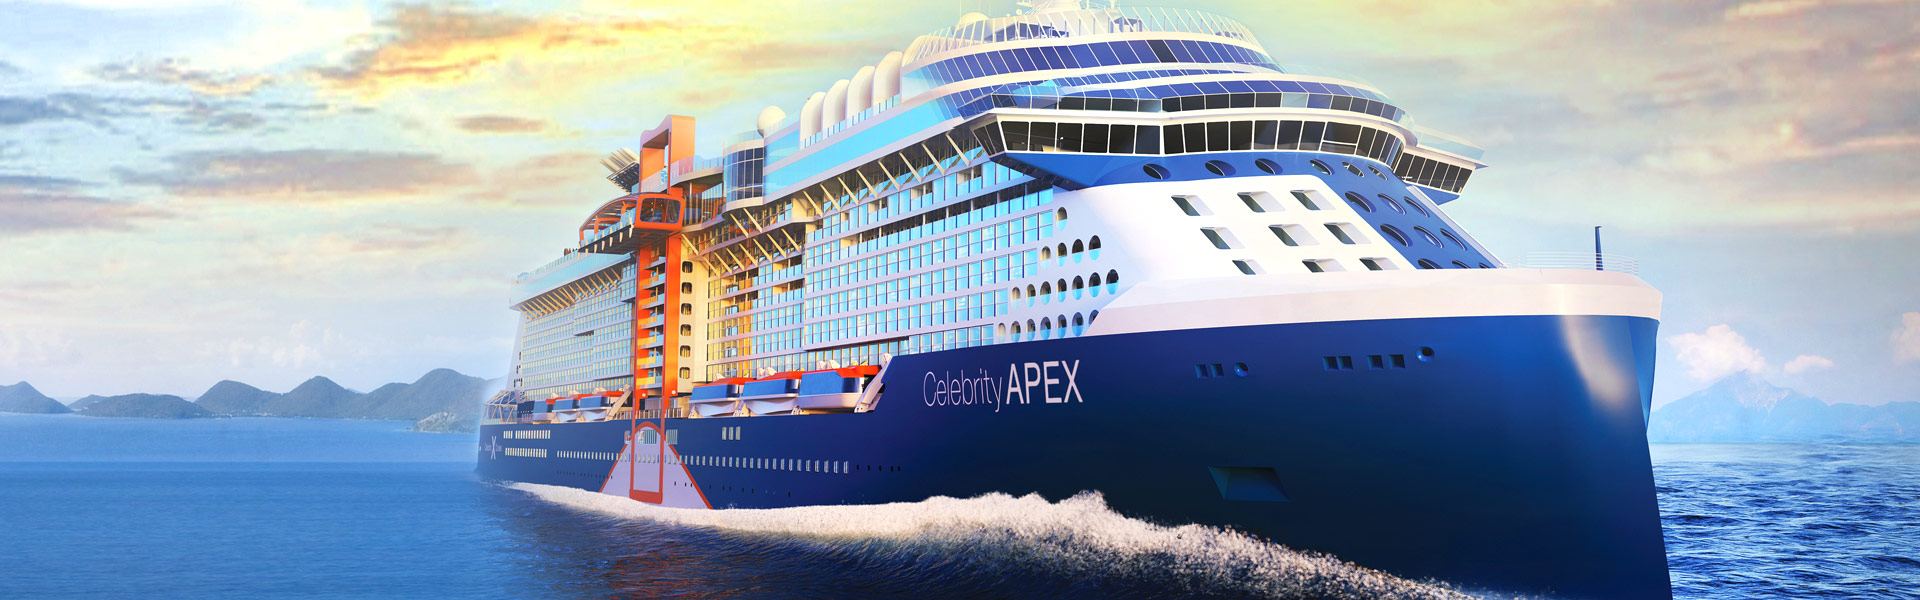 Celebrity Apex Cruise Ship Exterior